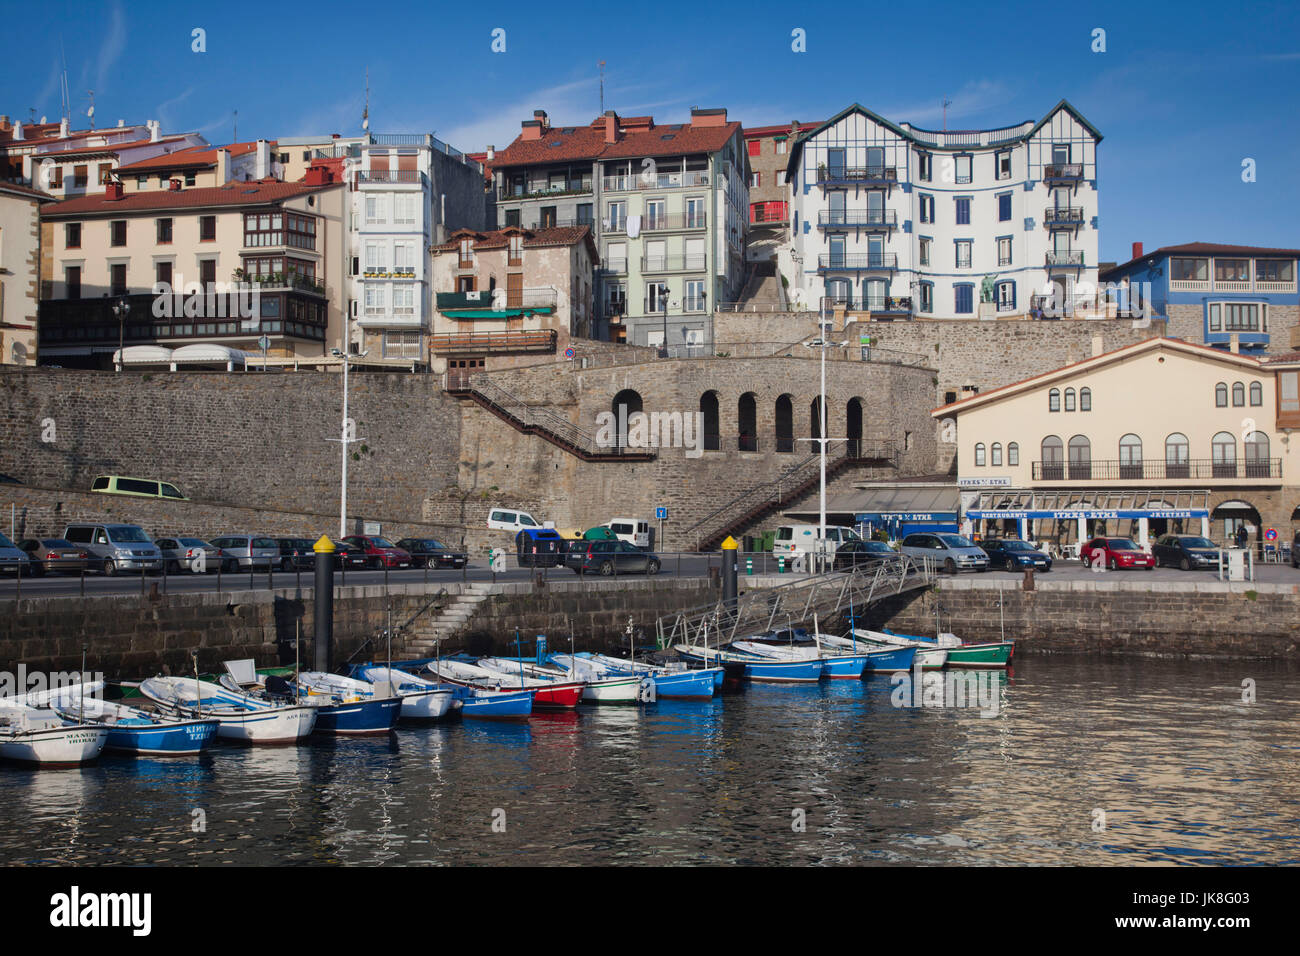 Spain, Basque Country Region, Guipuzcoa Province, Getaria, port view - Stock Image